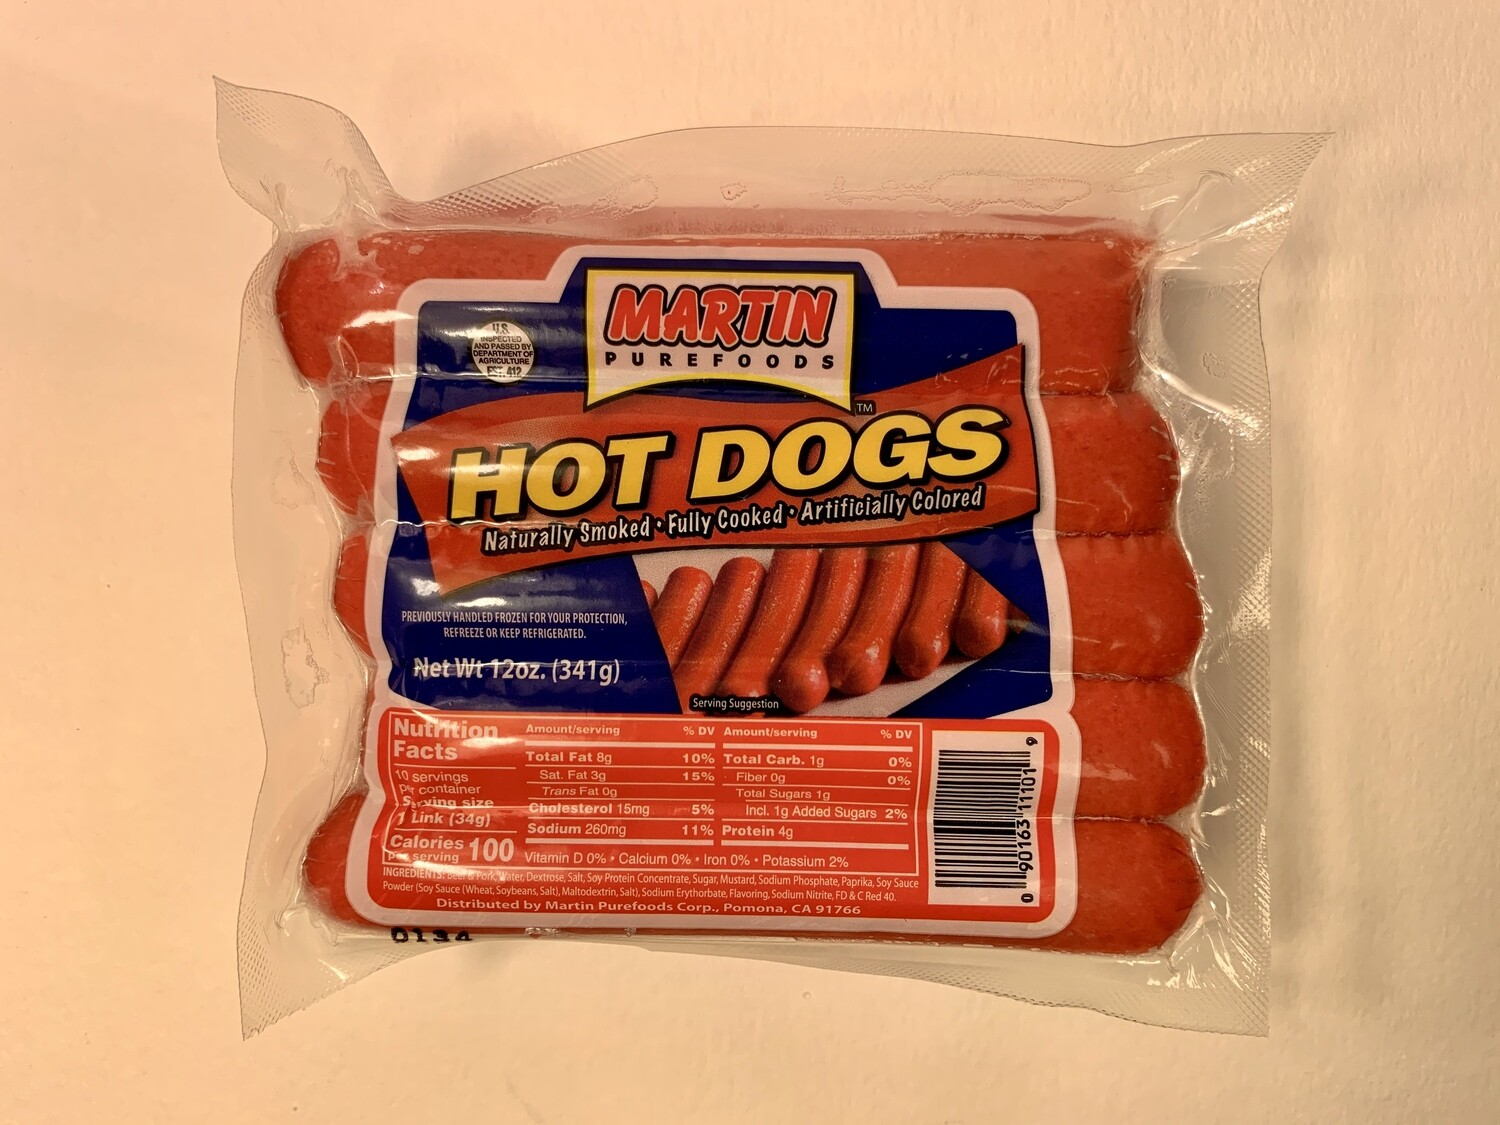 Martin Purefoods - Hot Dogs - 341 Grams